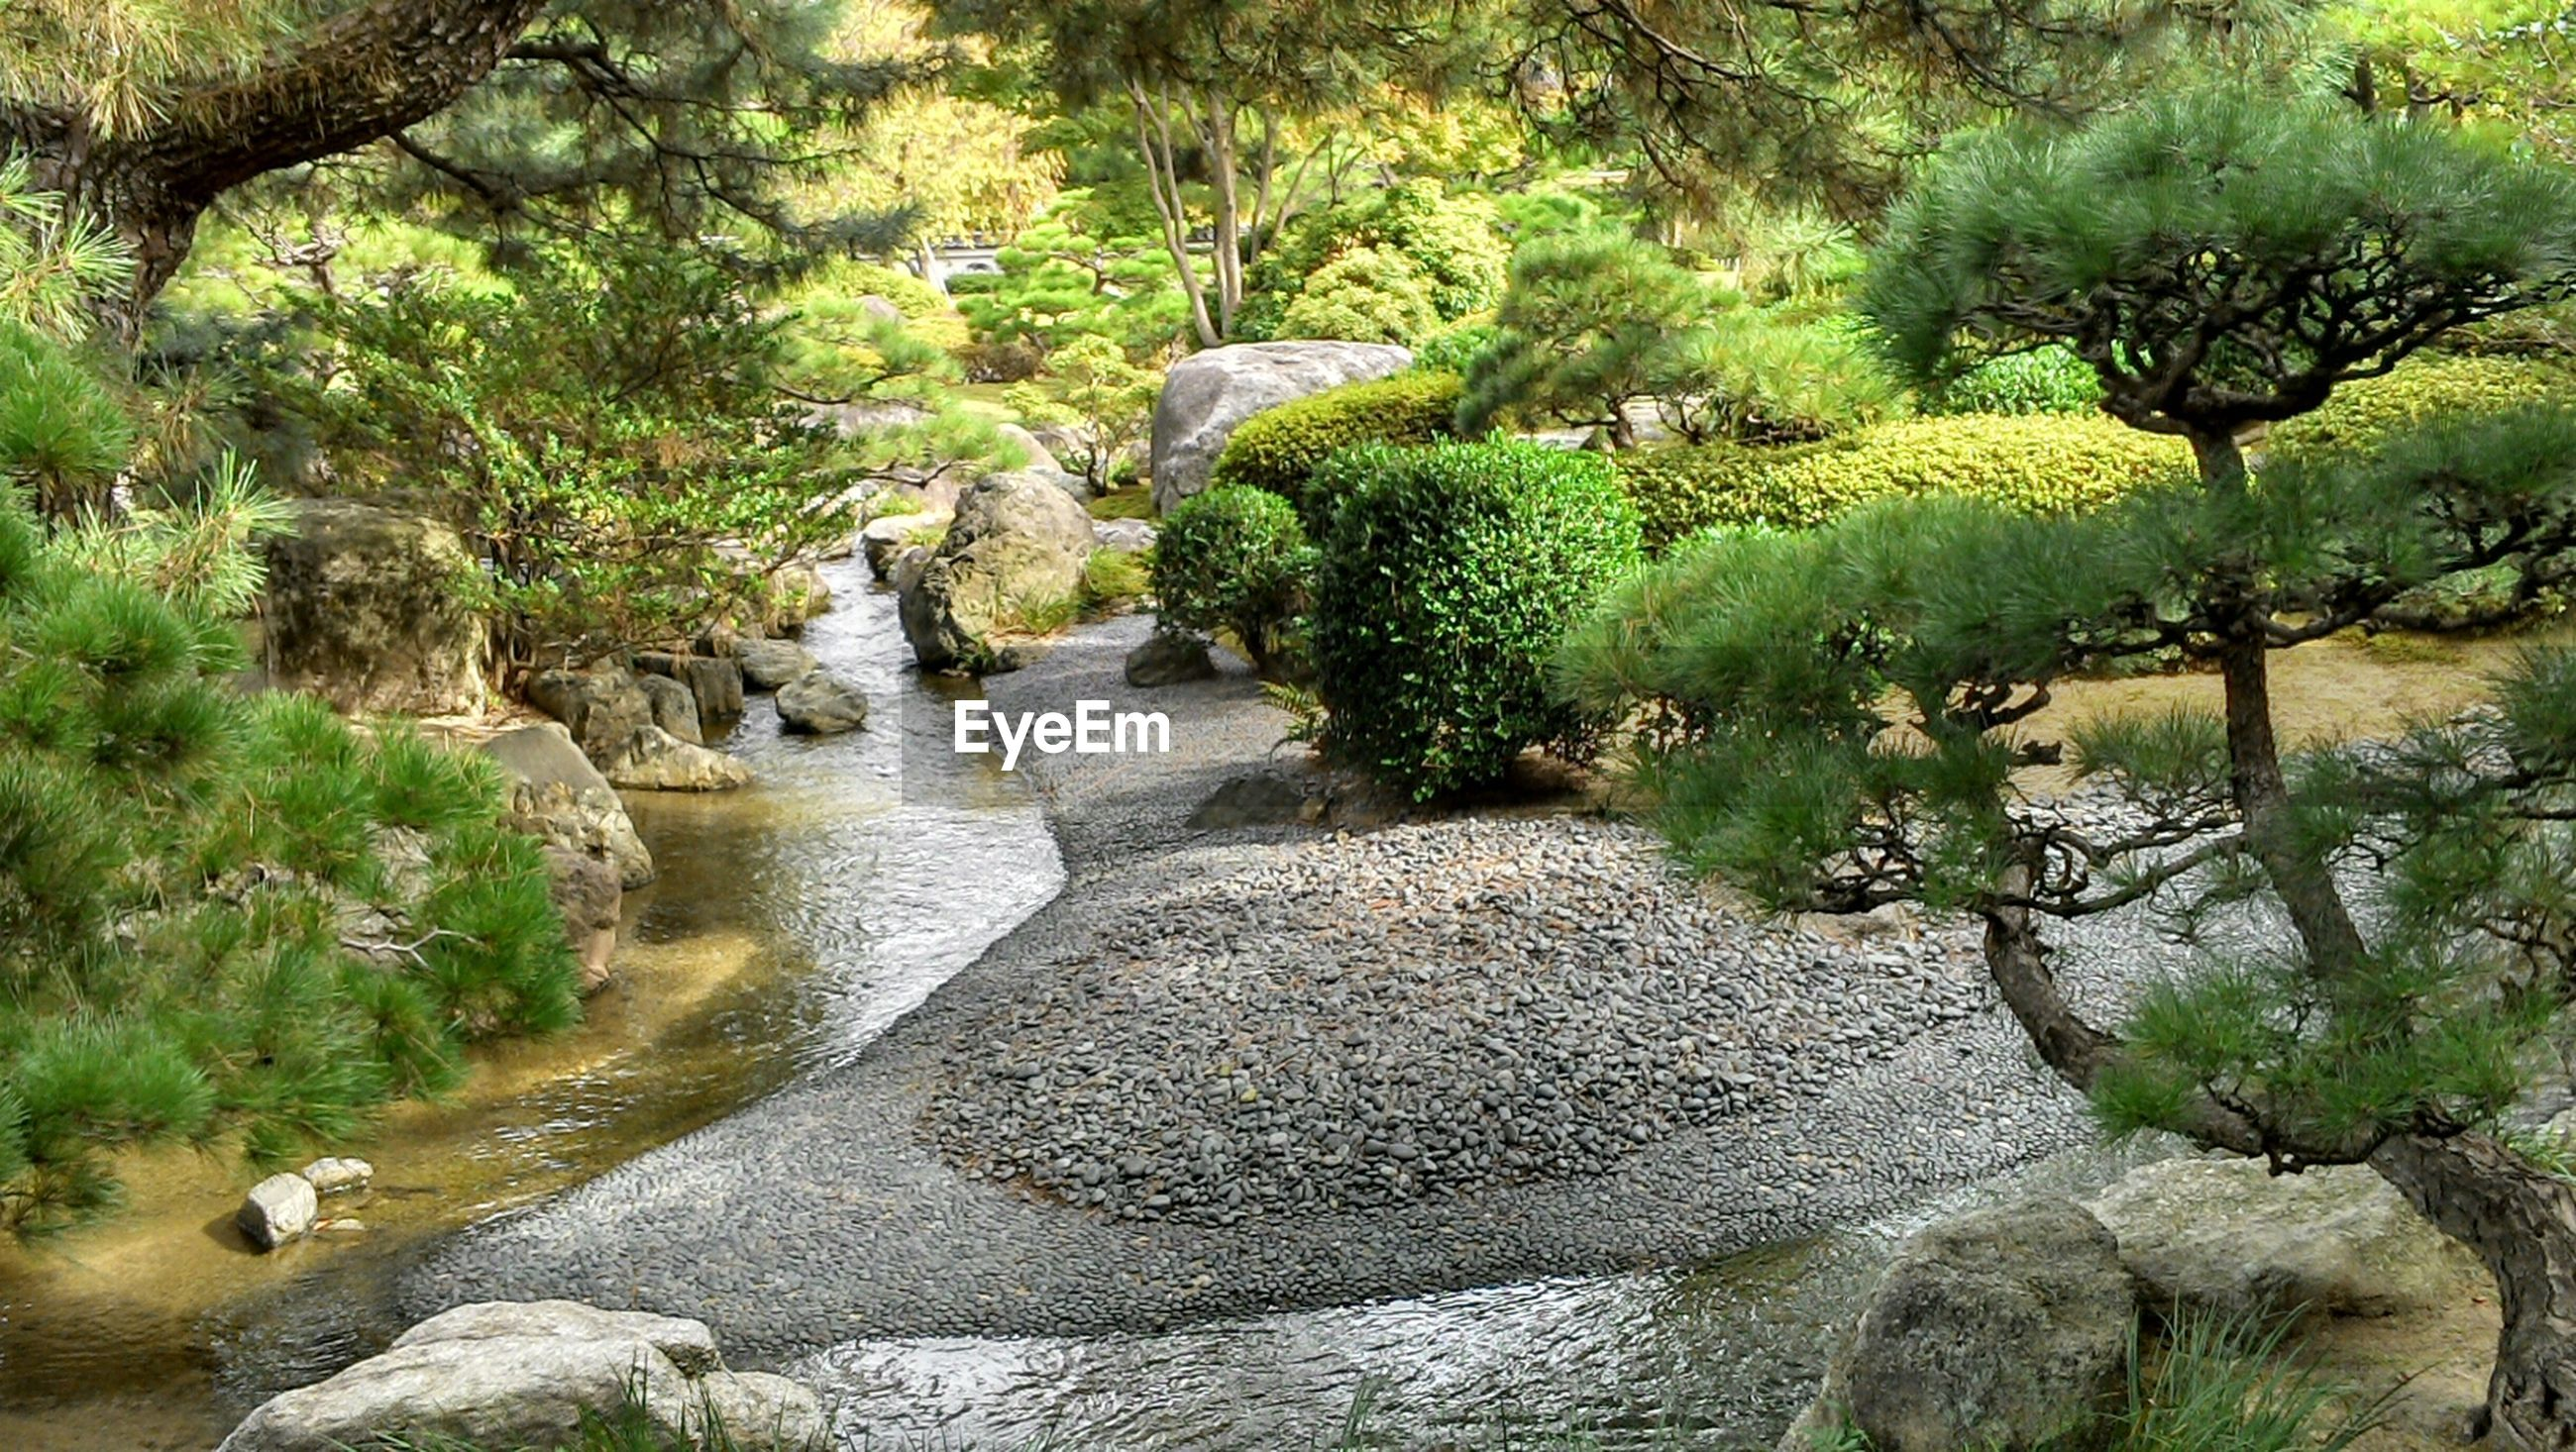 water, tree, nature, growth, plant, beauty in nature, tranquility, green color, rock - object, tranquil scene, river, scenics, day, stream, animal themes, outdoors, animals in the wild, pond, sunlight, no people